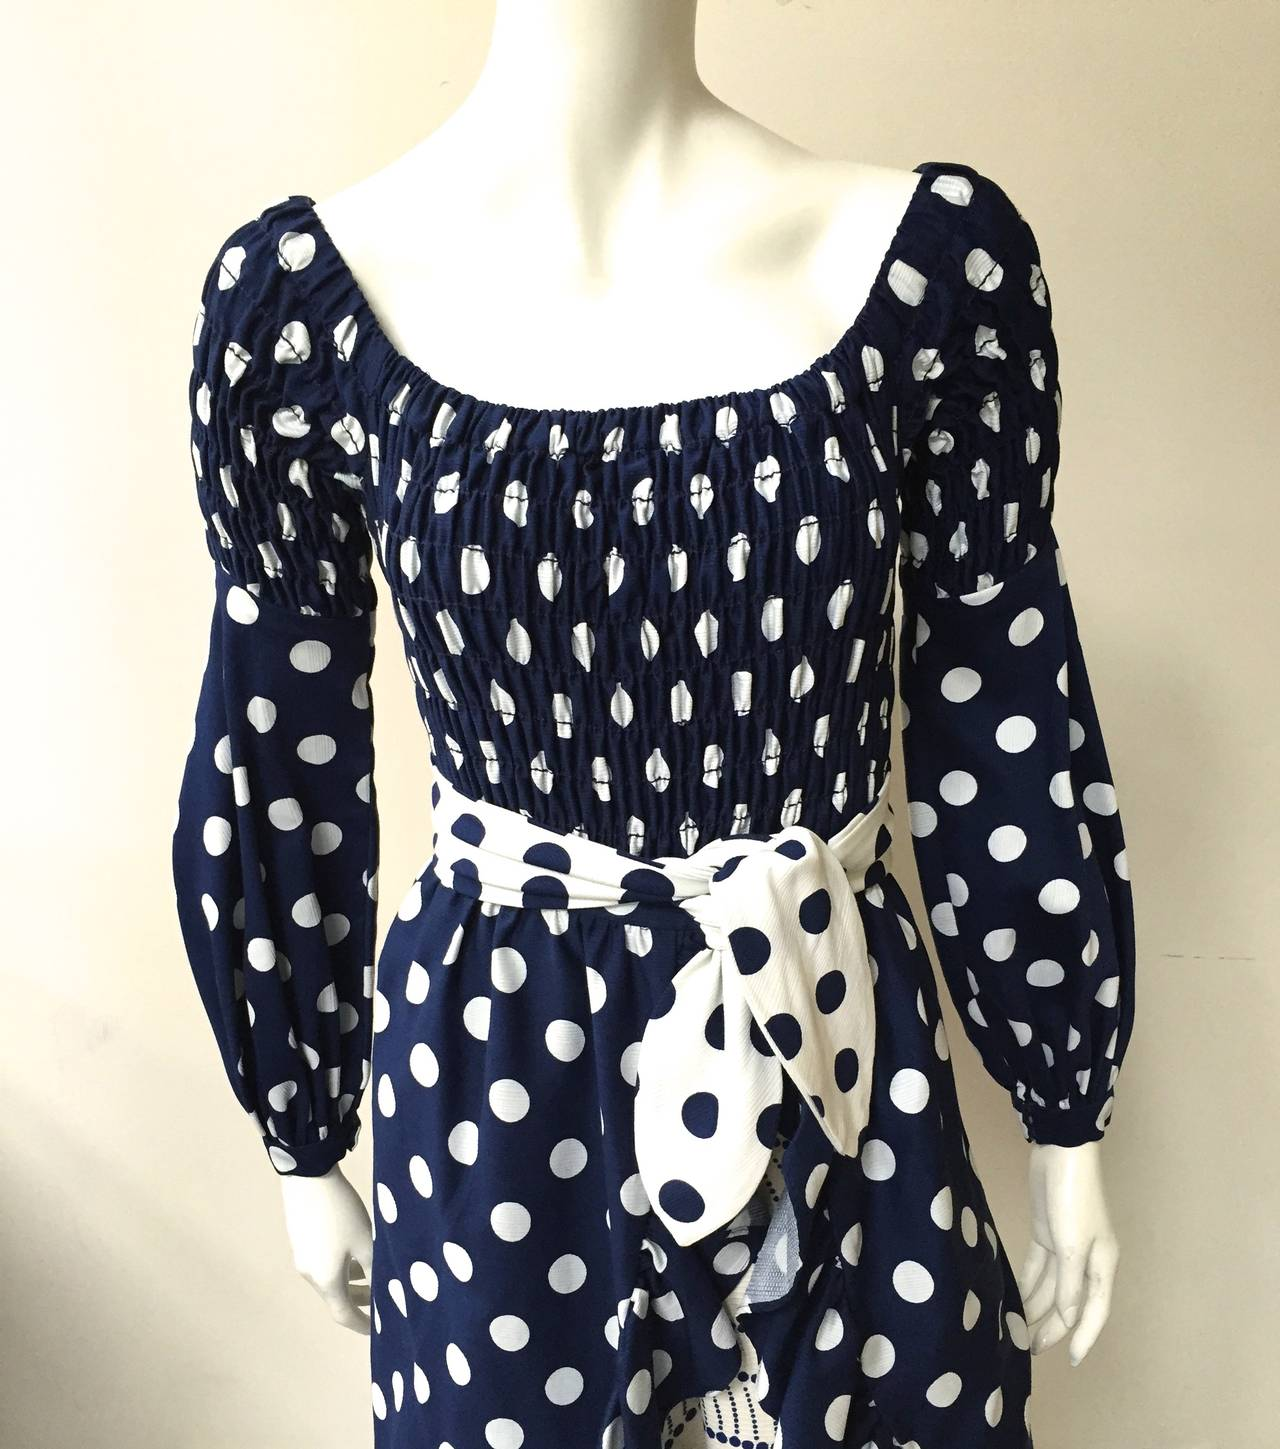 This Oscar de la Renta 3 piece polka dot dress with pockets was designed in 1970 and by January 1971 it appeared on the cover of Harper's Bazaar. Oscar de la Renta Boutique dress with over skirt and matching self tie belt. This is a fantastic mix of